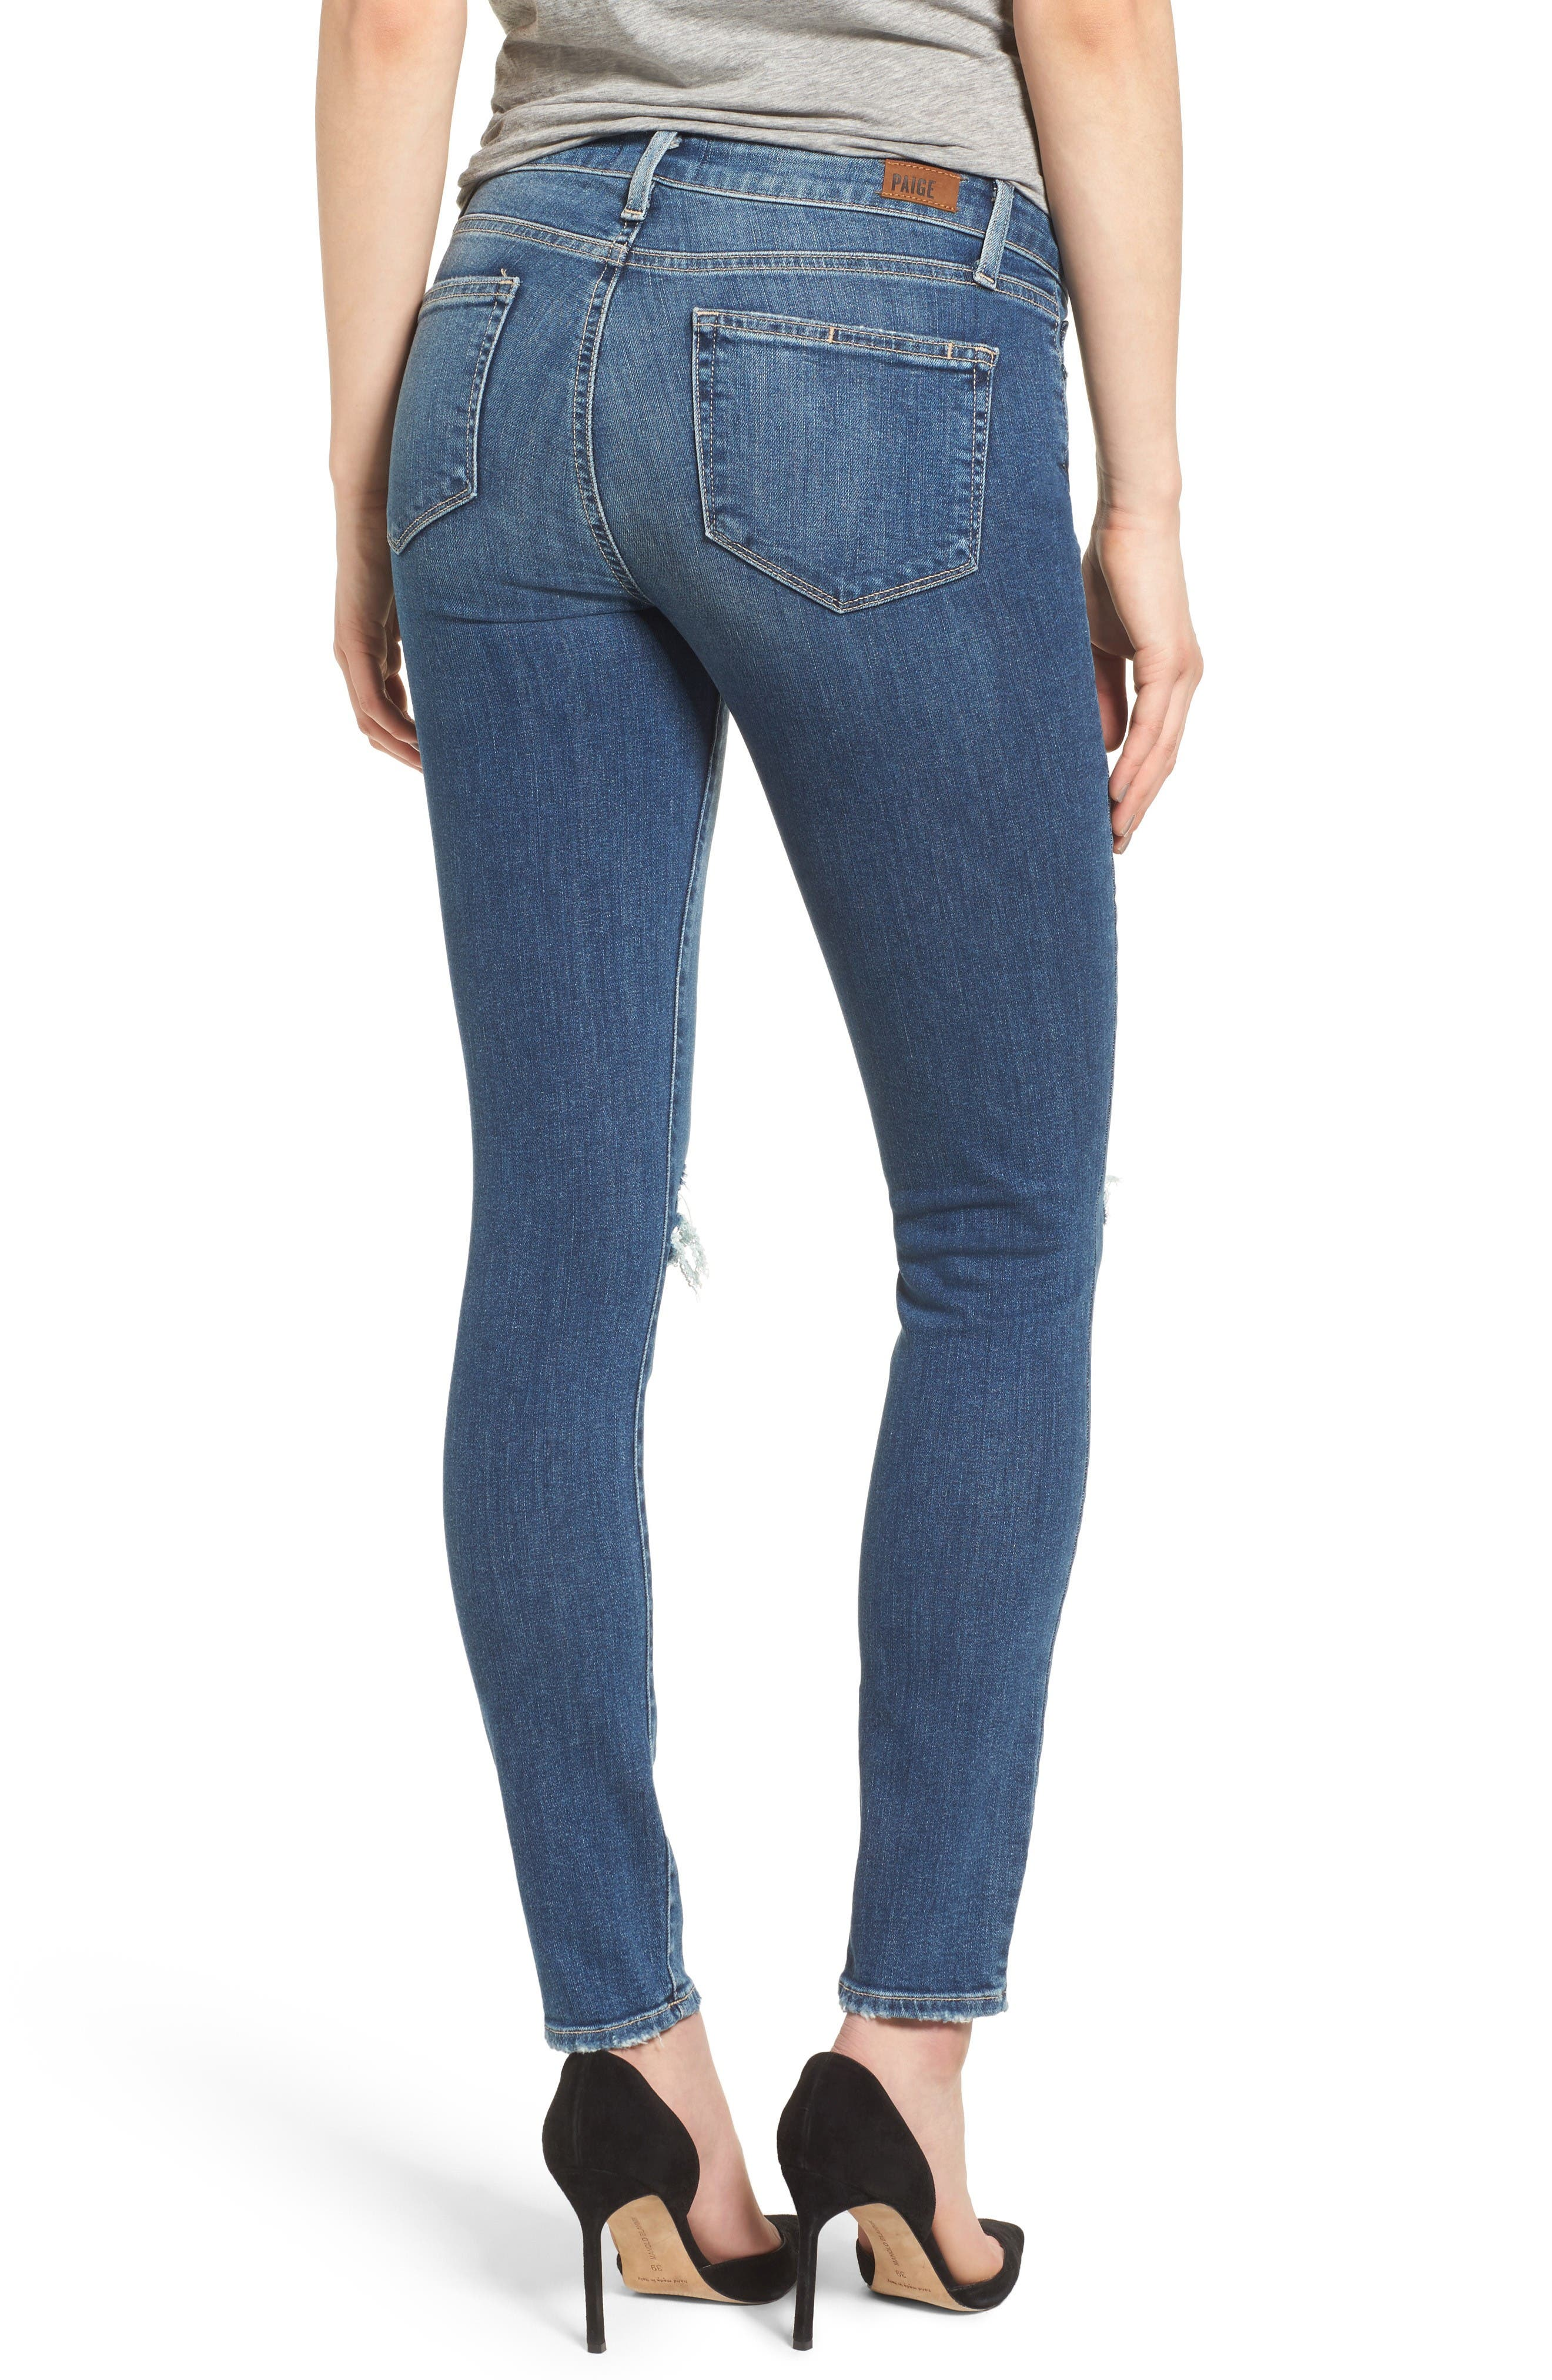 Alternate Image 2  - PAIGE Verdugo Ripped Ultra Skinny Jeans (Destructed Blue)